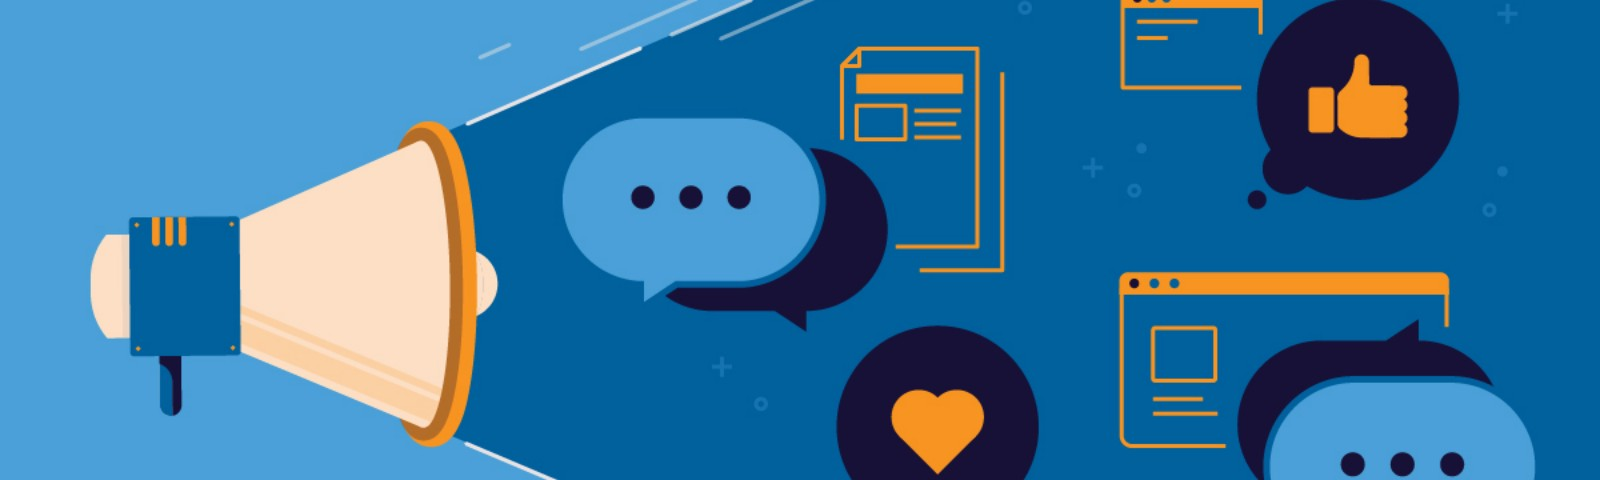 Megaphone with communication imagery like text message, heart icon, web pages, and more